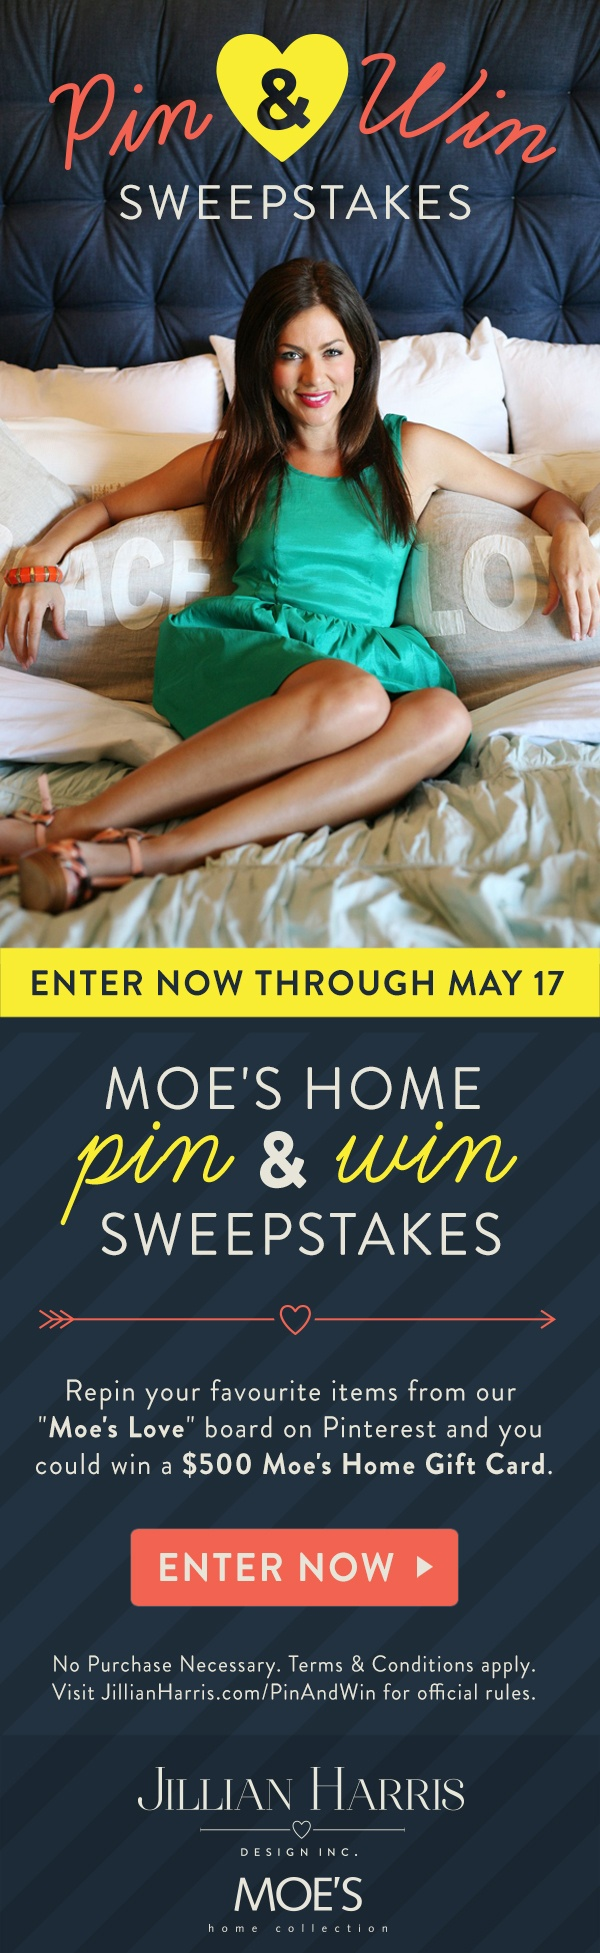 Repin your favourite items from this board for your chance to win a $500 gift certificate from Moe's Home! Visit jillianharris.com/PinAndWin for details!